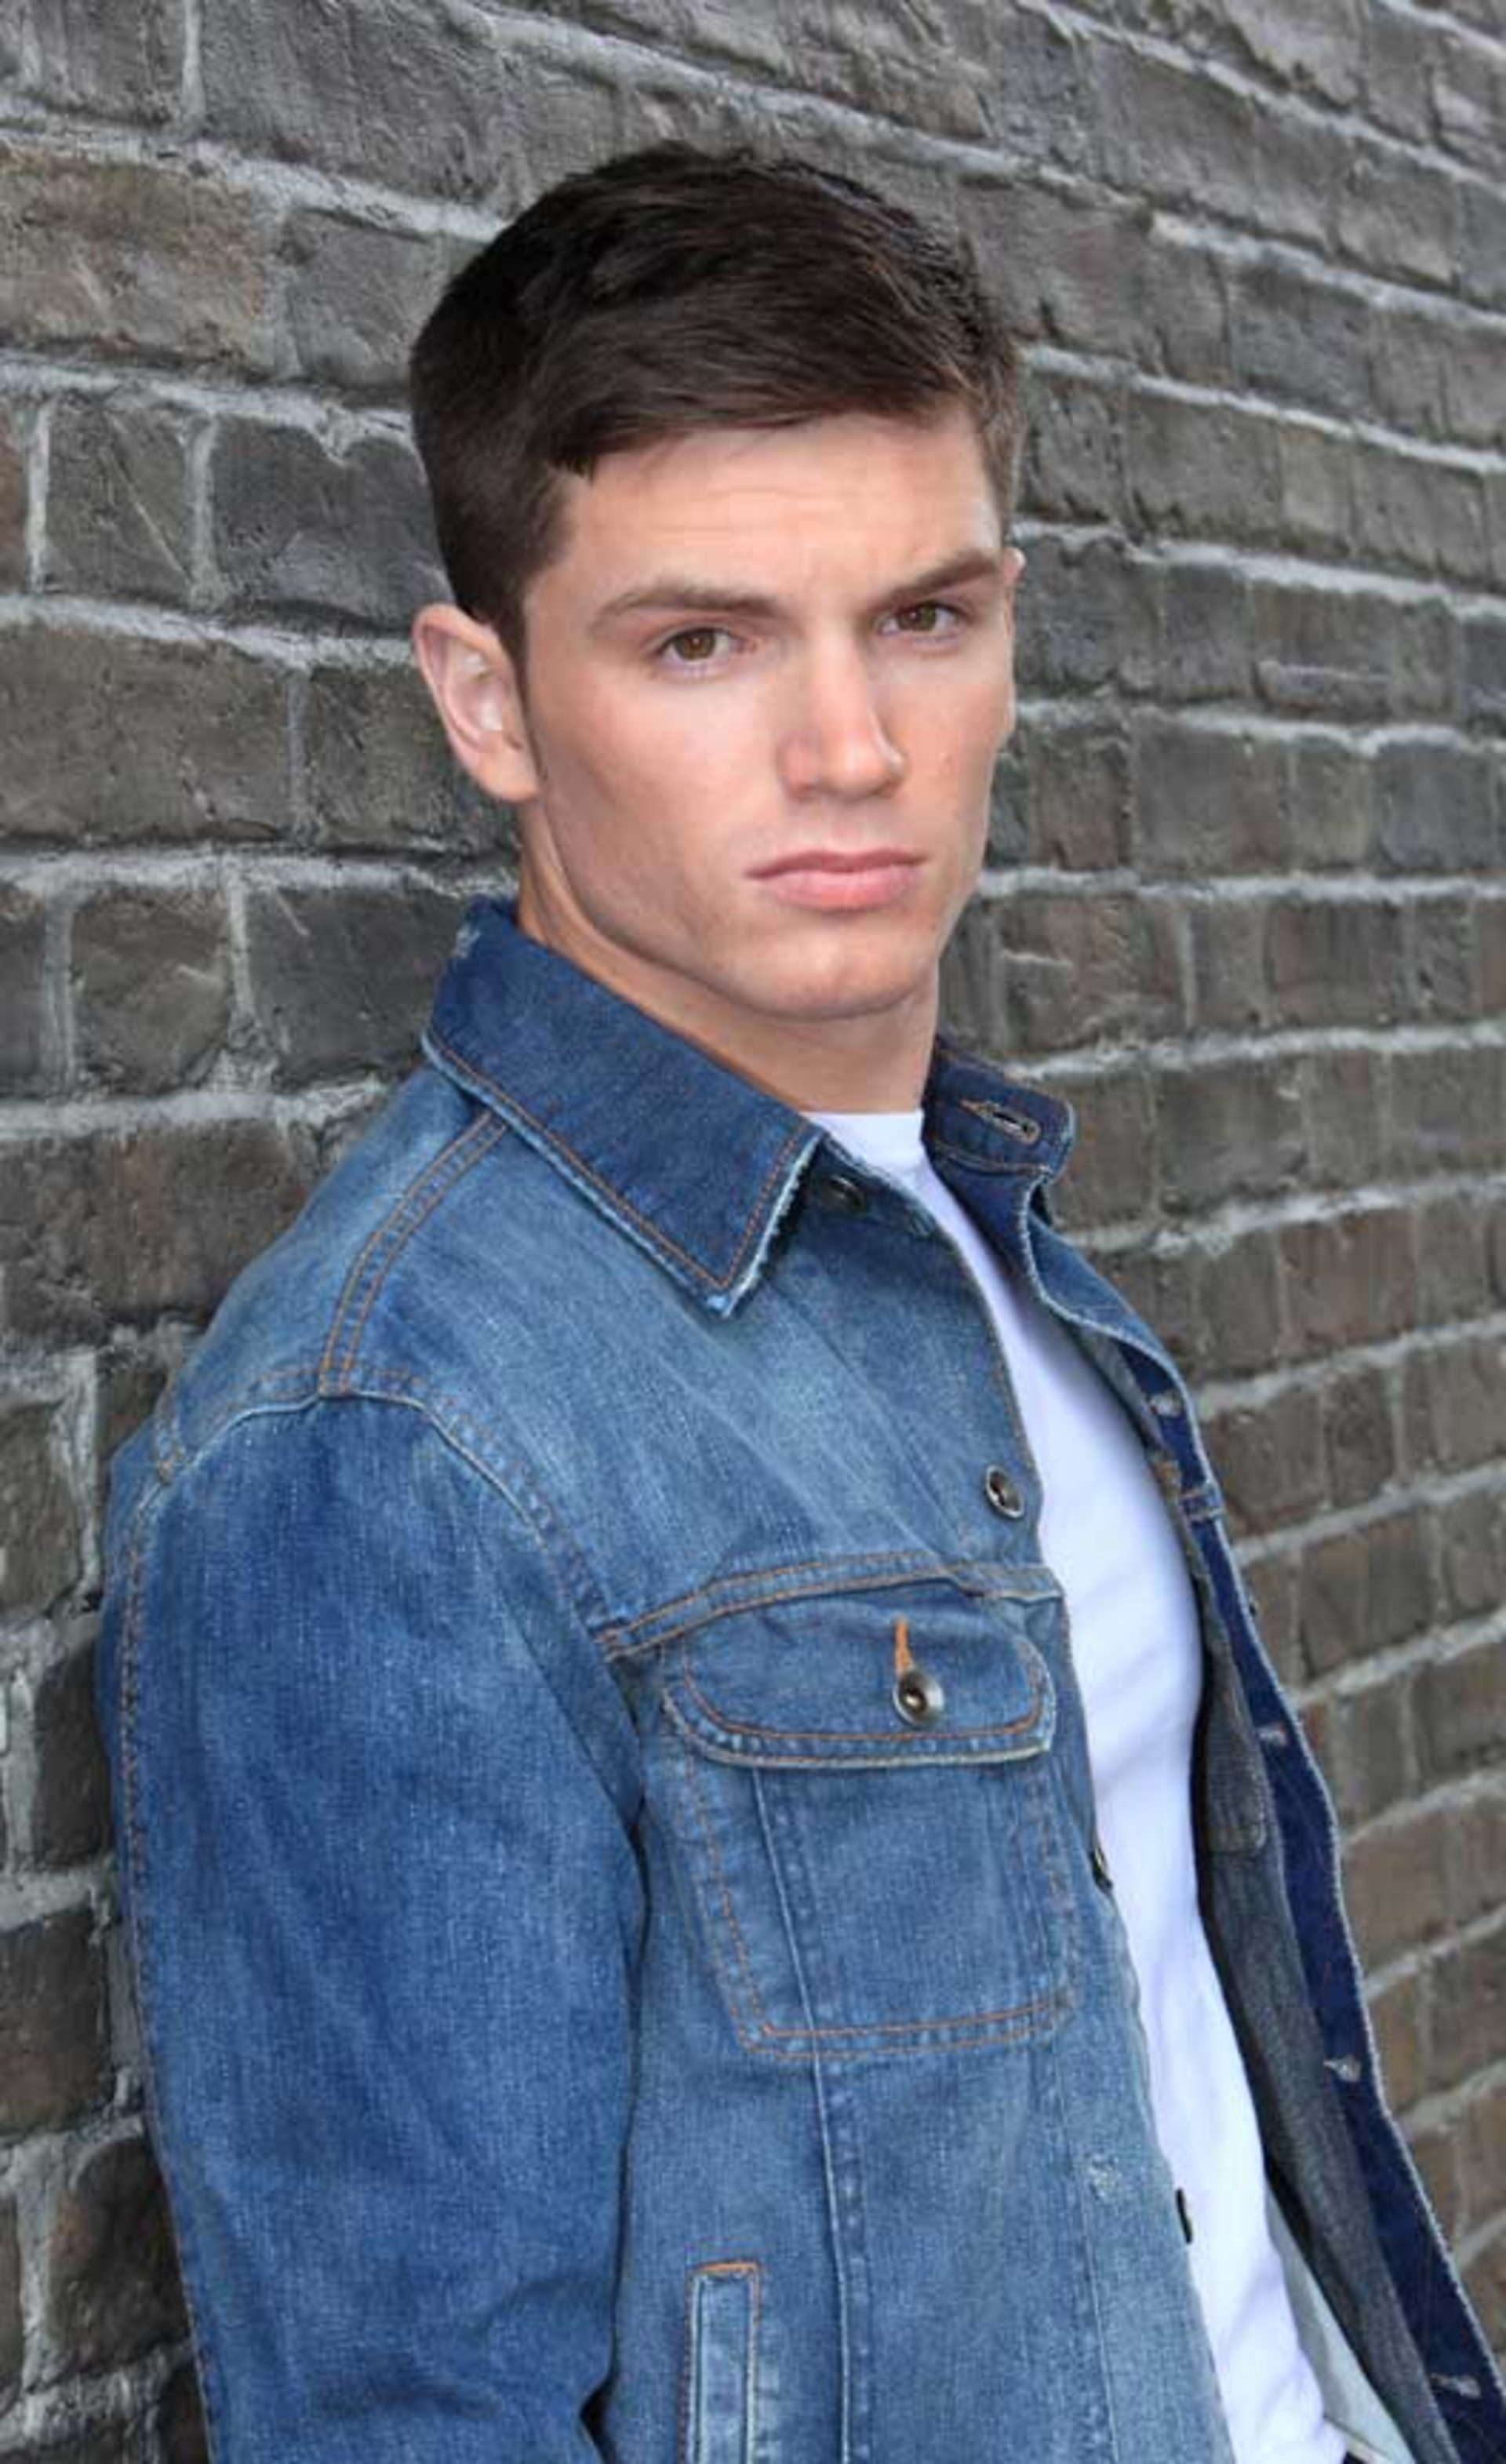 who is joey from eastenders dating in real life